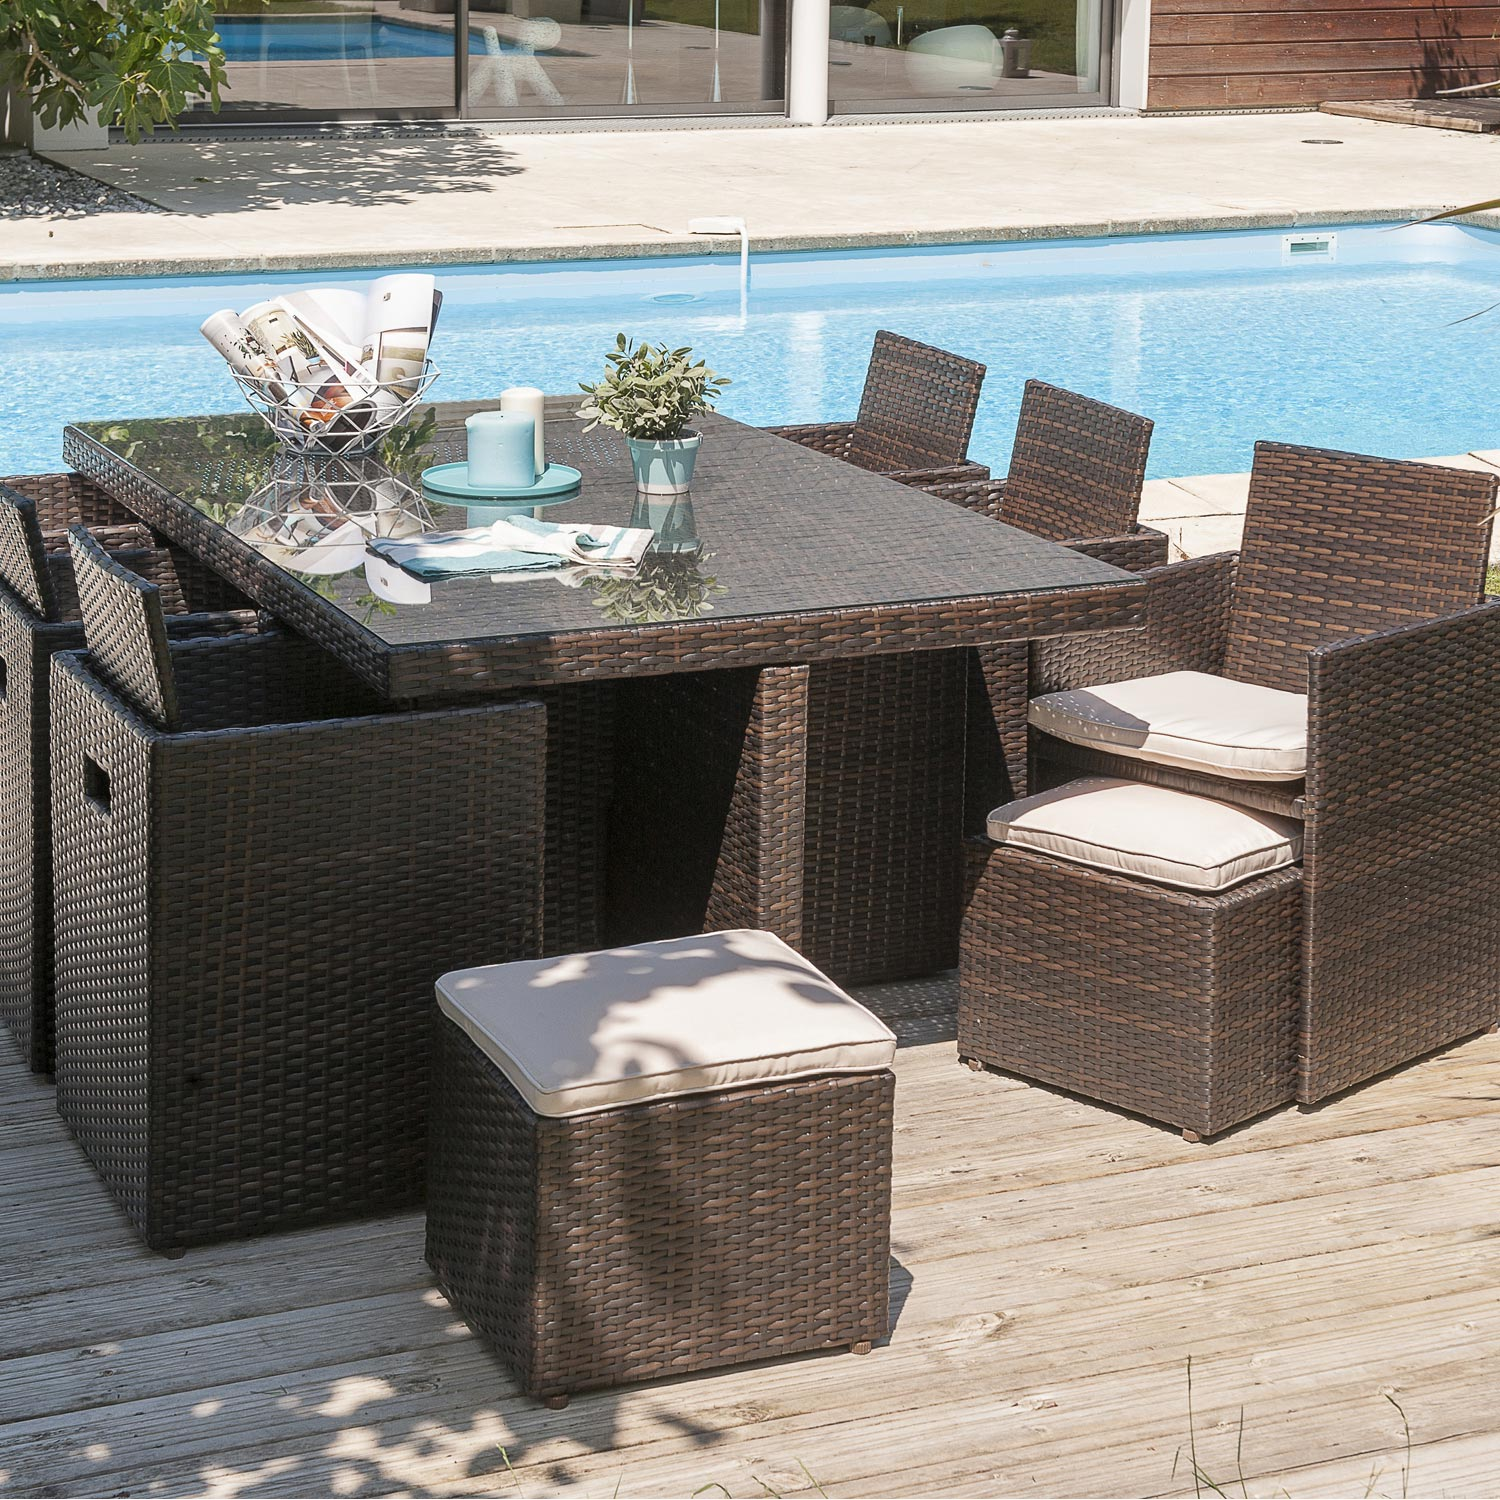 Salon de jardin encastrable r sine tress e chocolat 1 table 6 fauteuils 2 - Mobilier de jardin leroy merlin ...